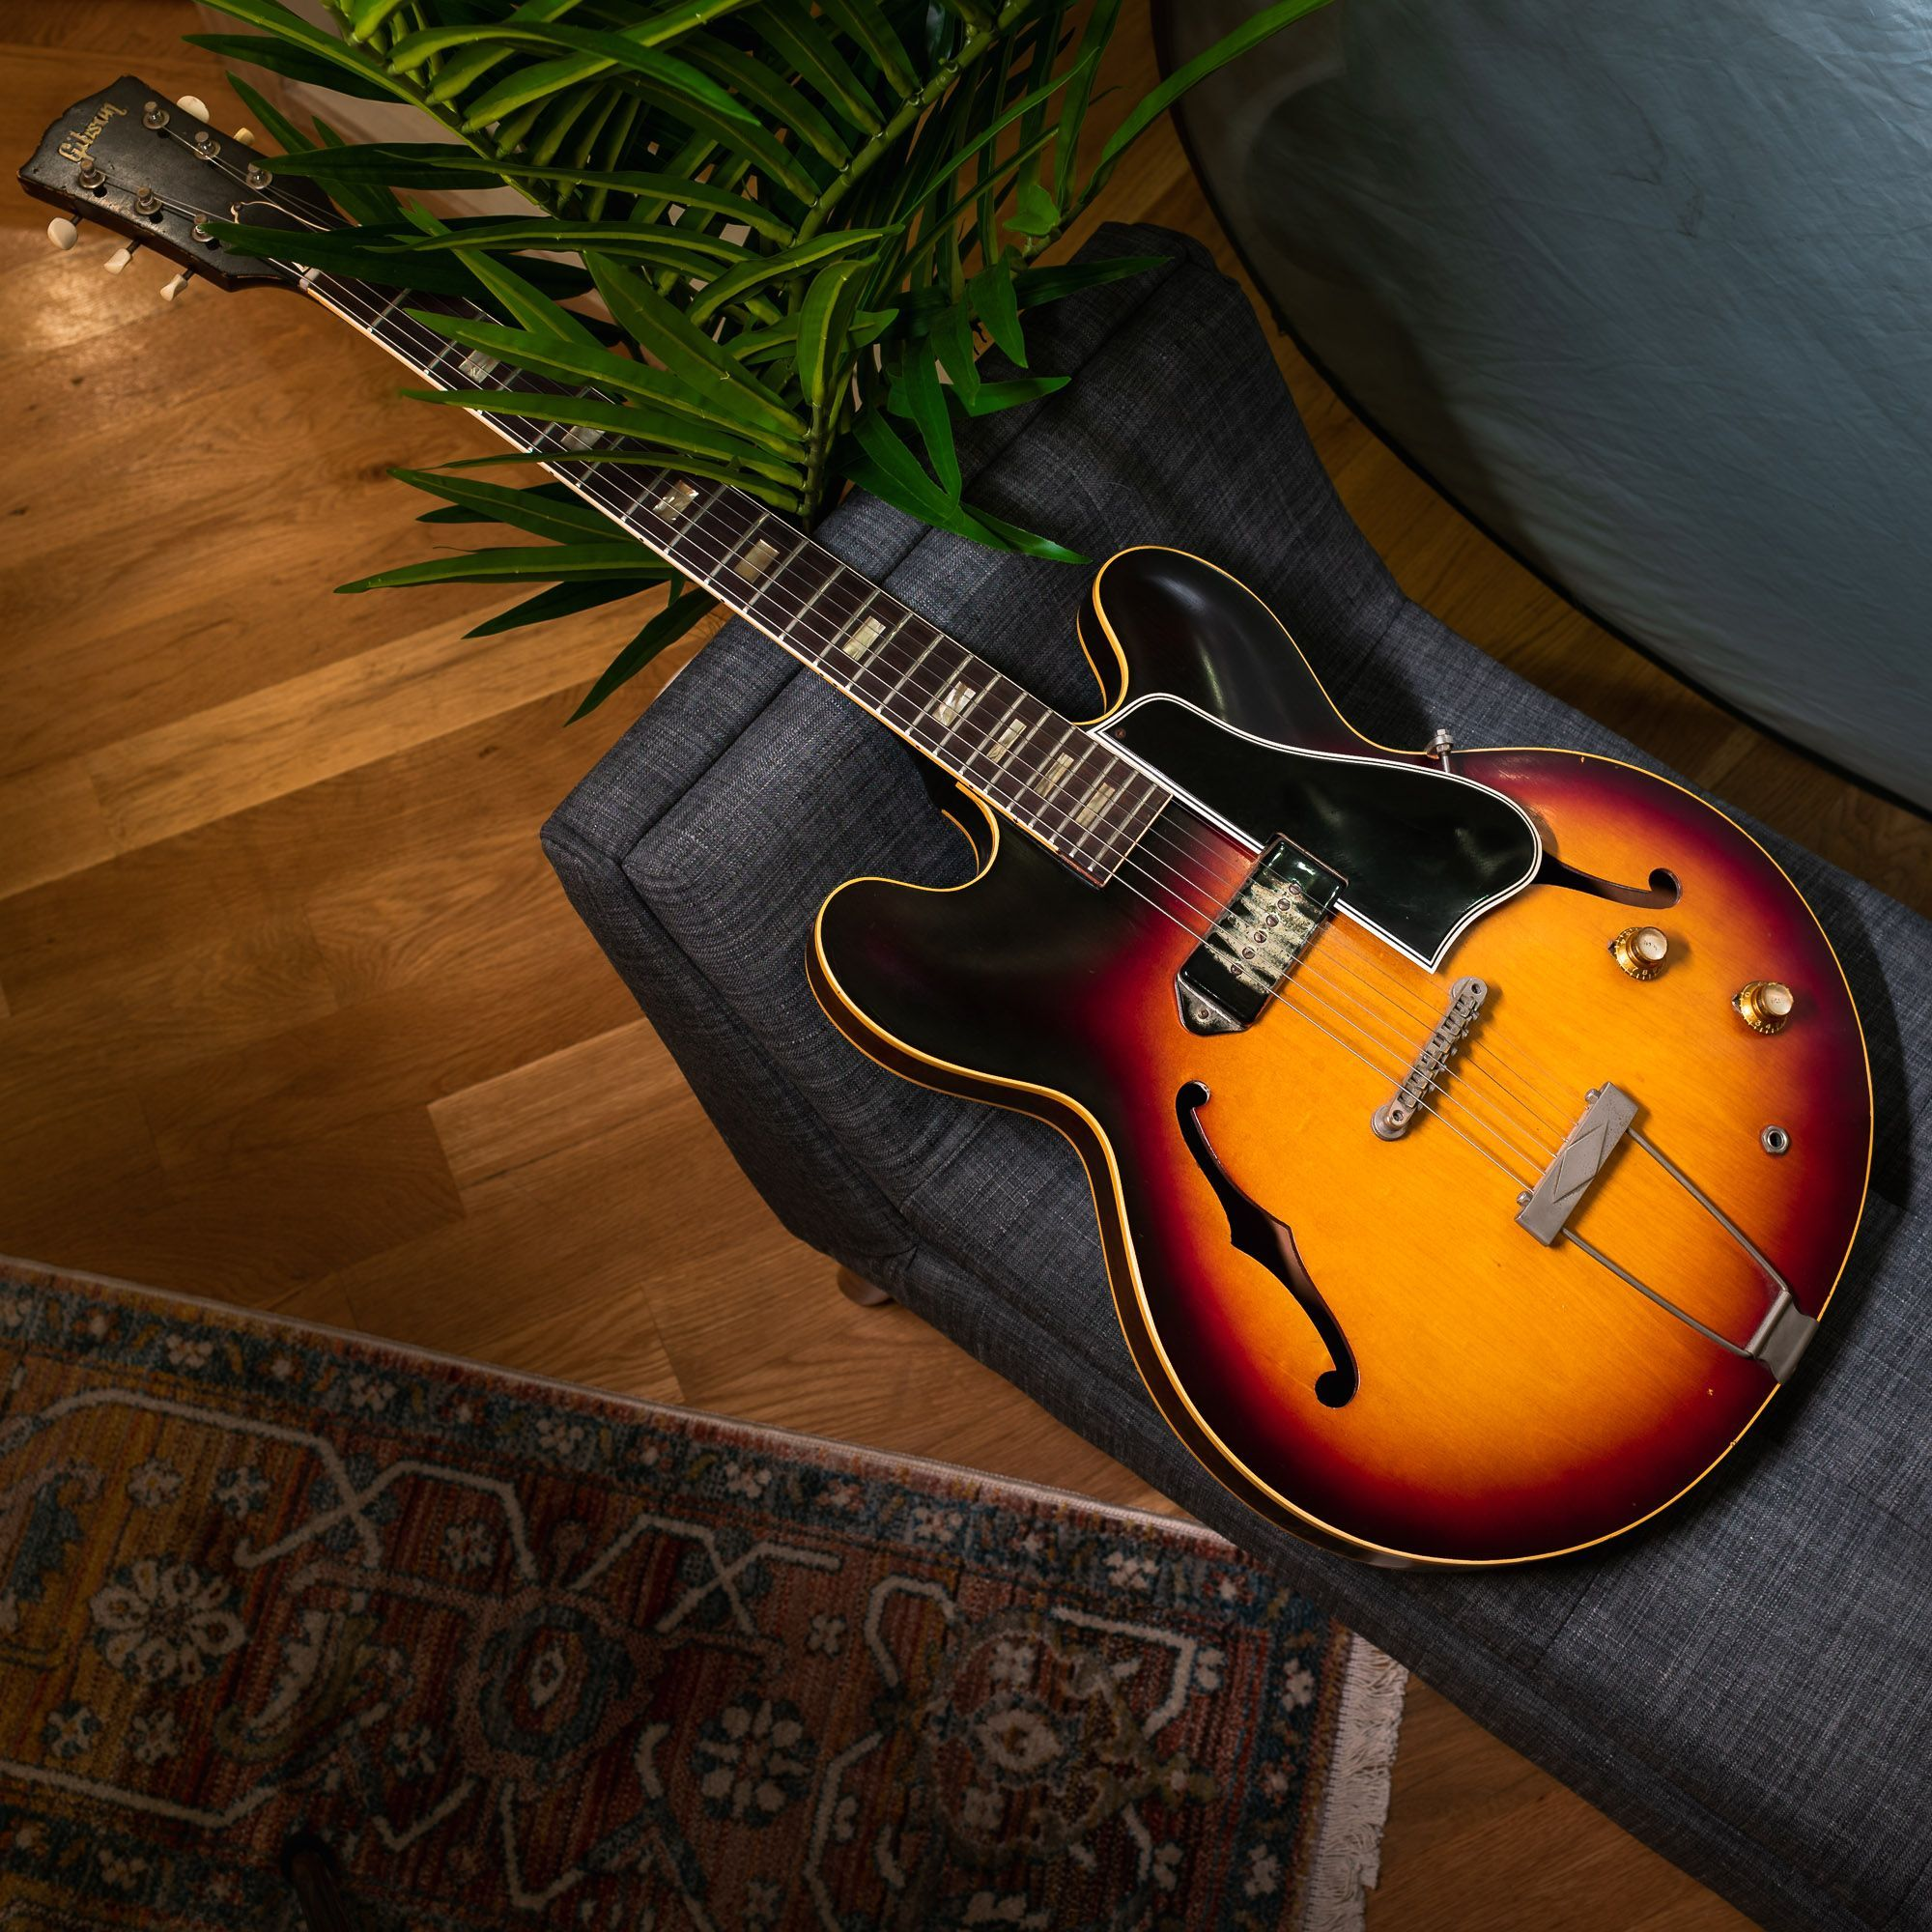 An Historic Es Just Has More To Say What Does This 62 Es 330t Say To You Chicagomusicexchange Gibson Es Guitar Guitar Photography Gibson Guitars